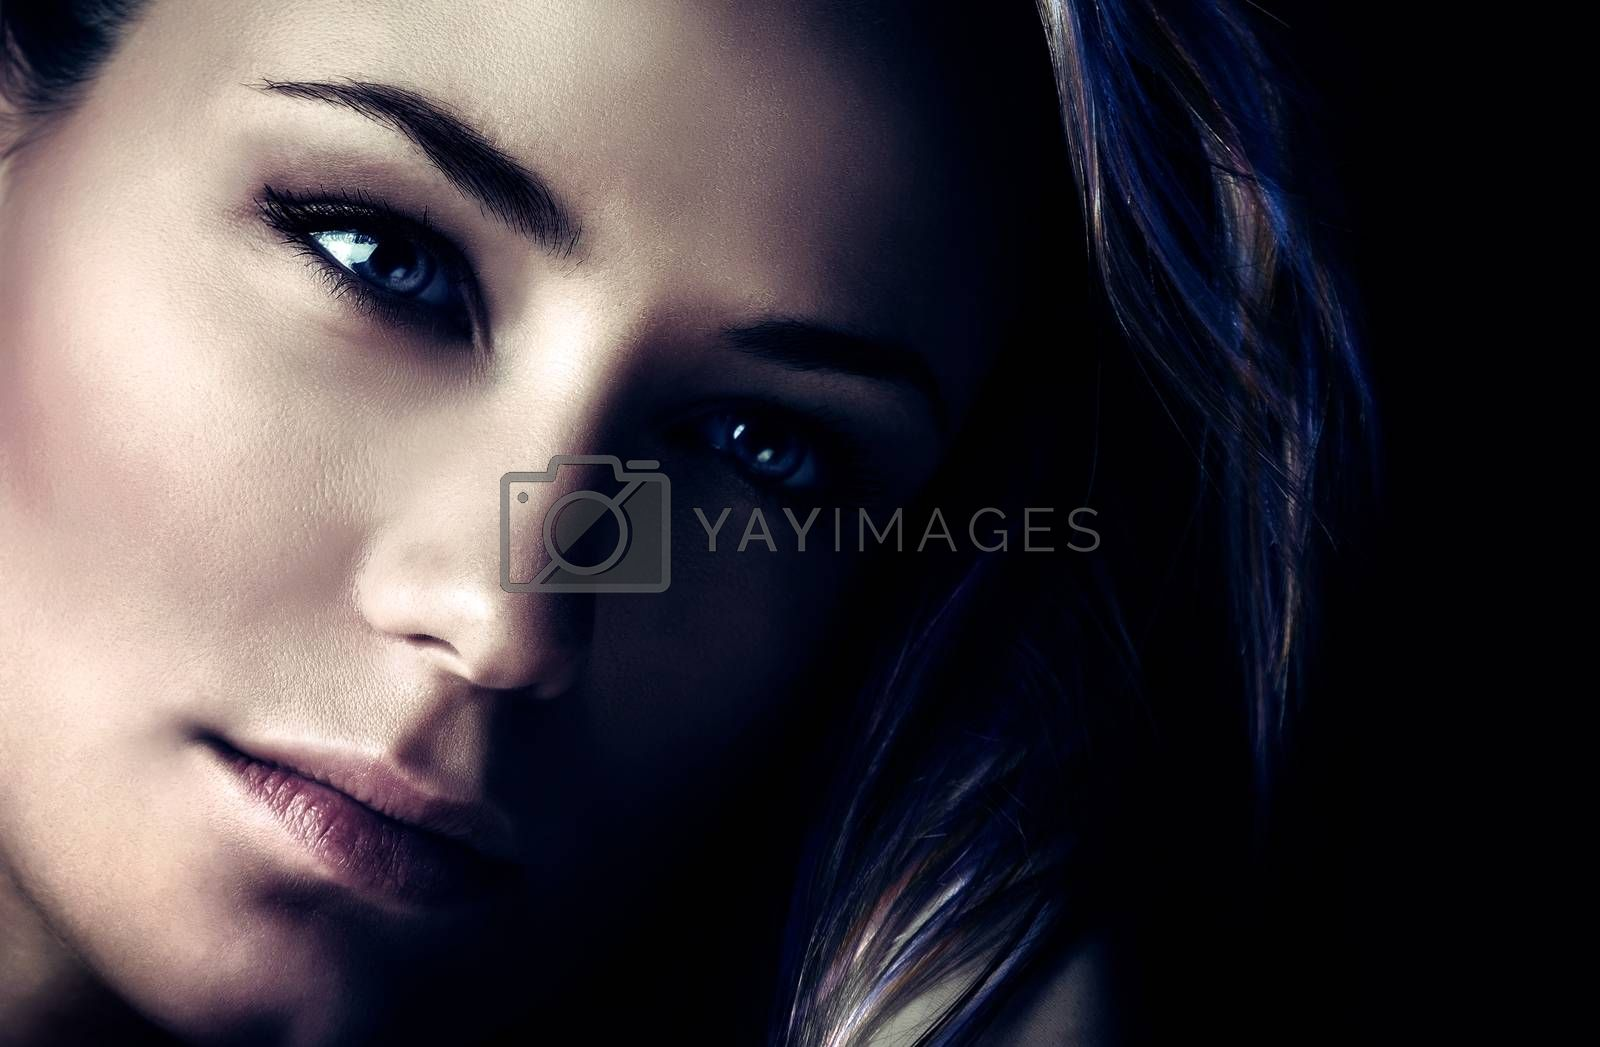 Fashion woman portrait, beautiful gorgeous female over dark background, closeup photo of a perfect womens face, style and beauty